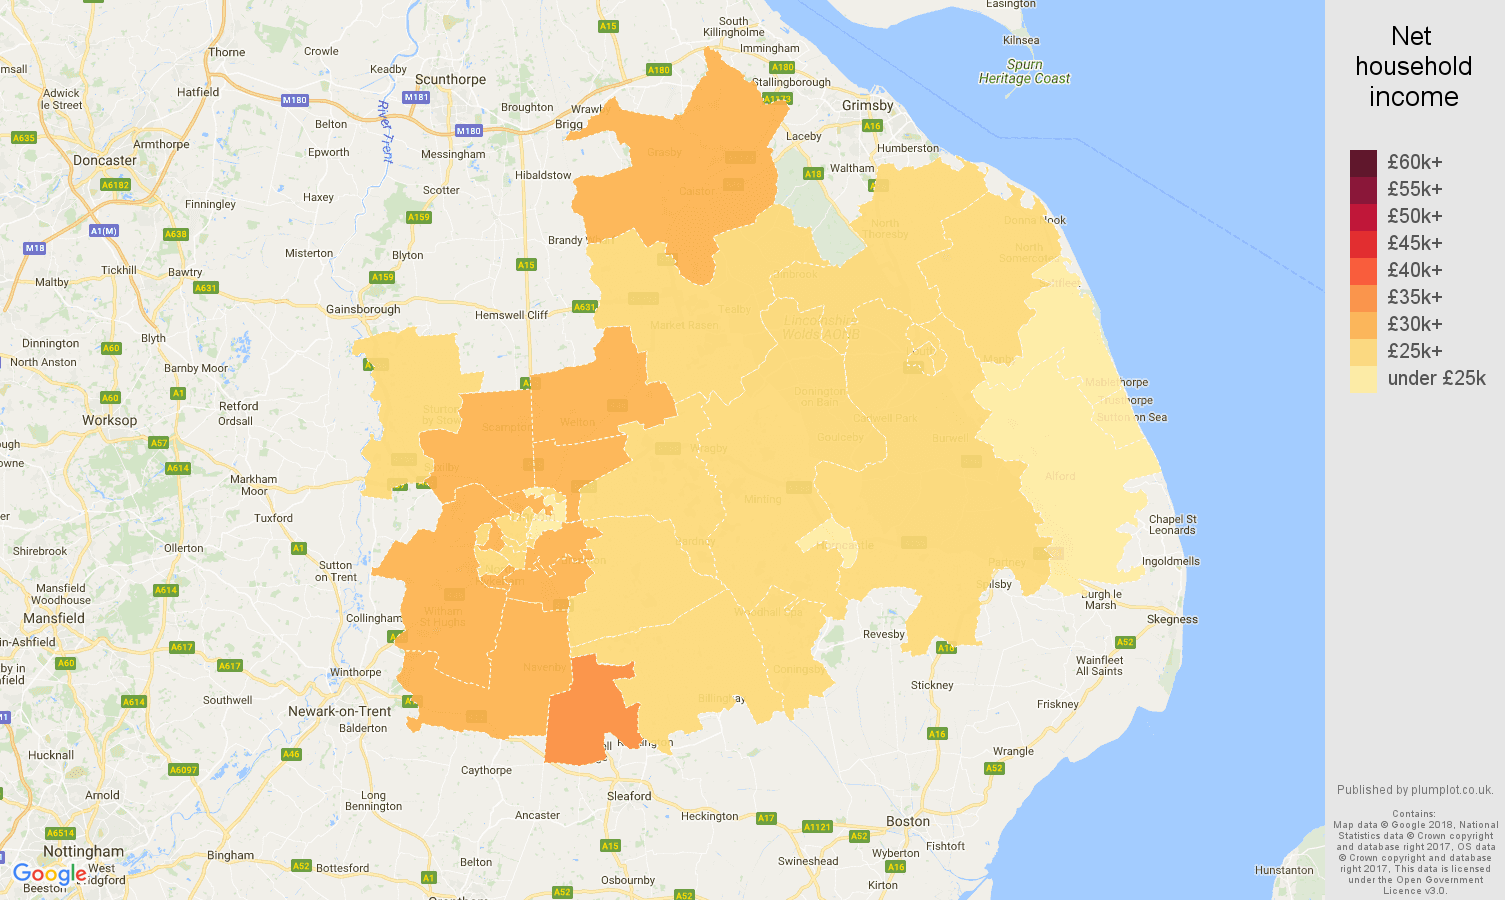 Lincoln net household income map